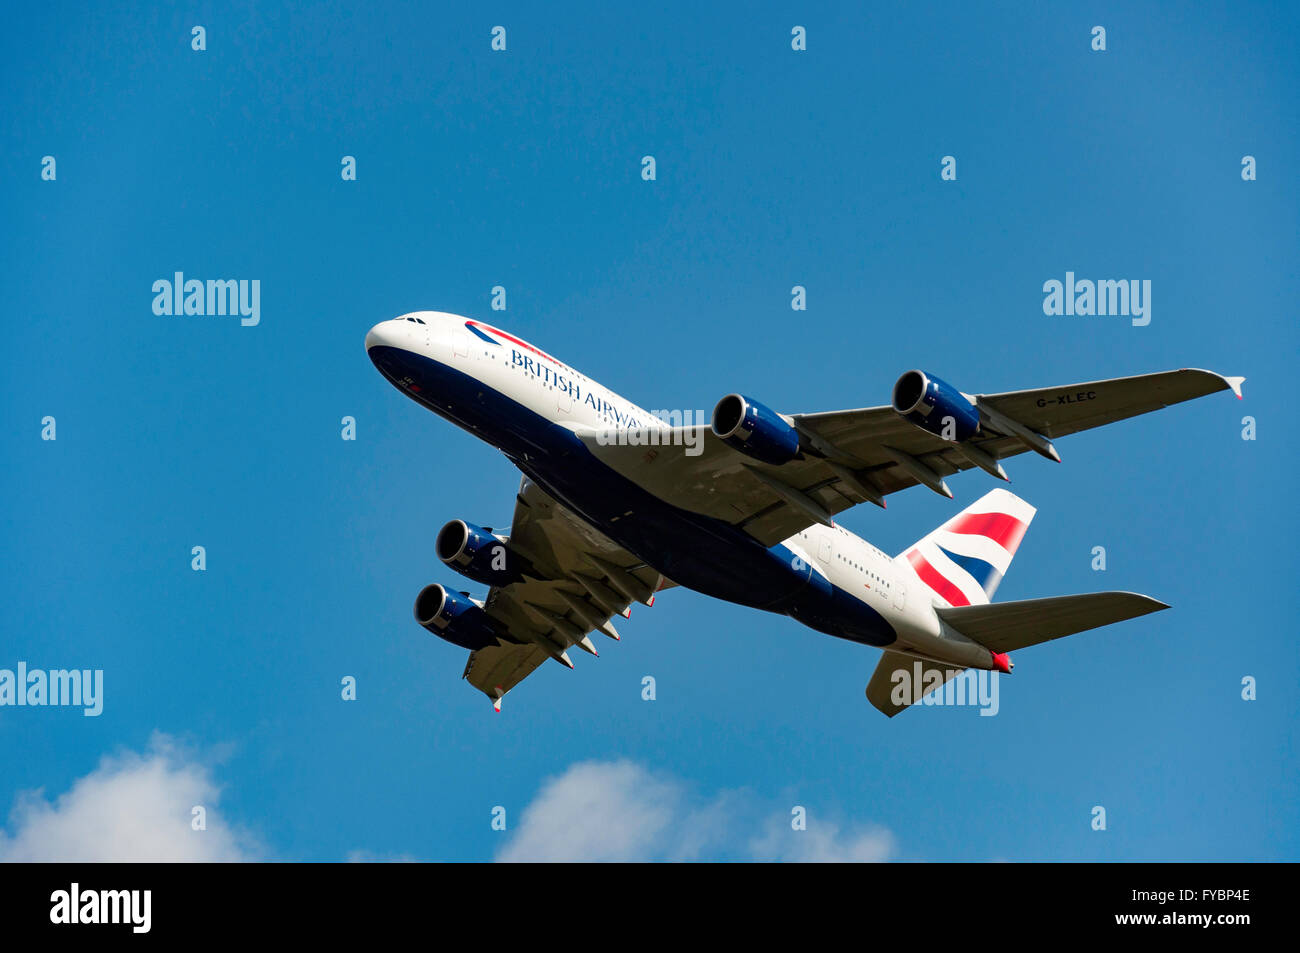 British Airways Airbus A380 taking off from Heathrow Airport, Greater London, England, United Kingdom - Stock Image